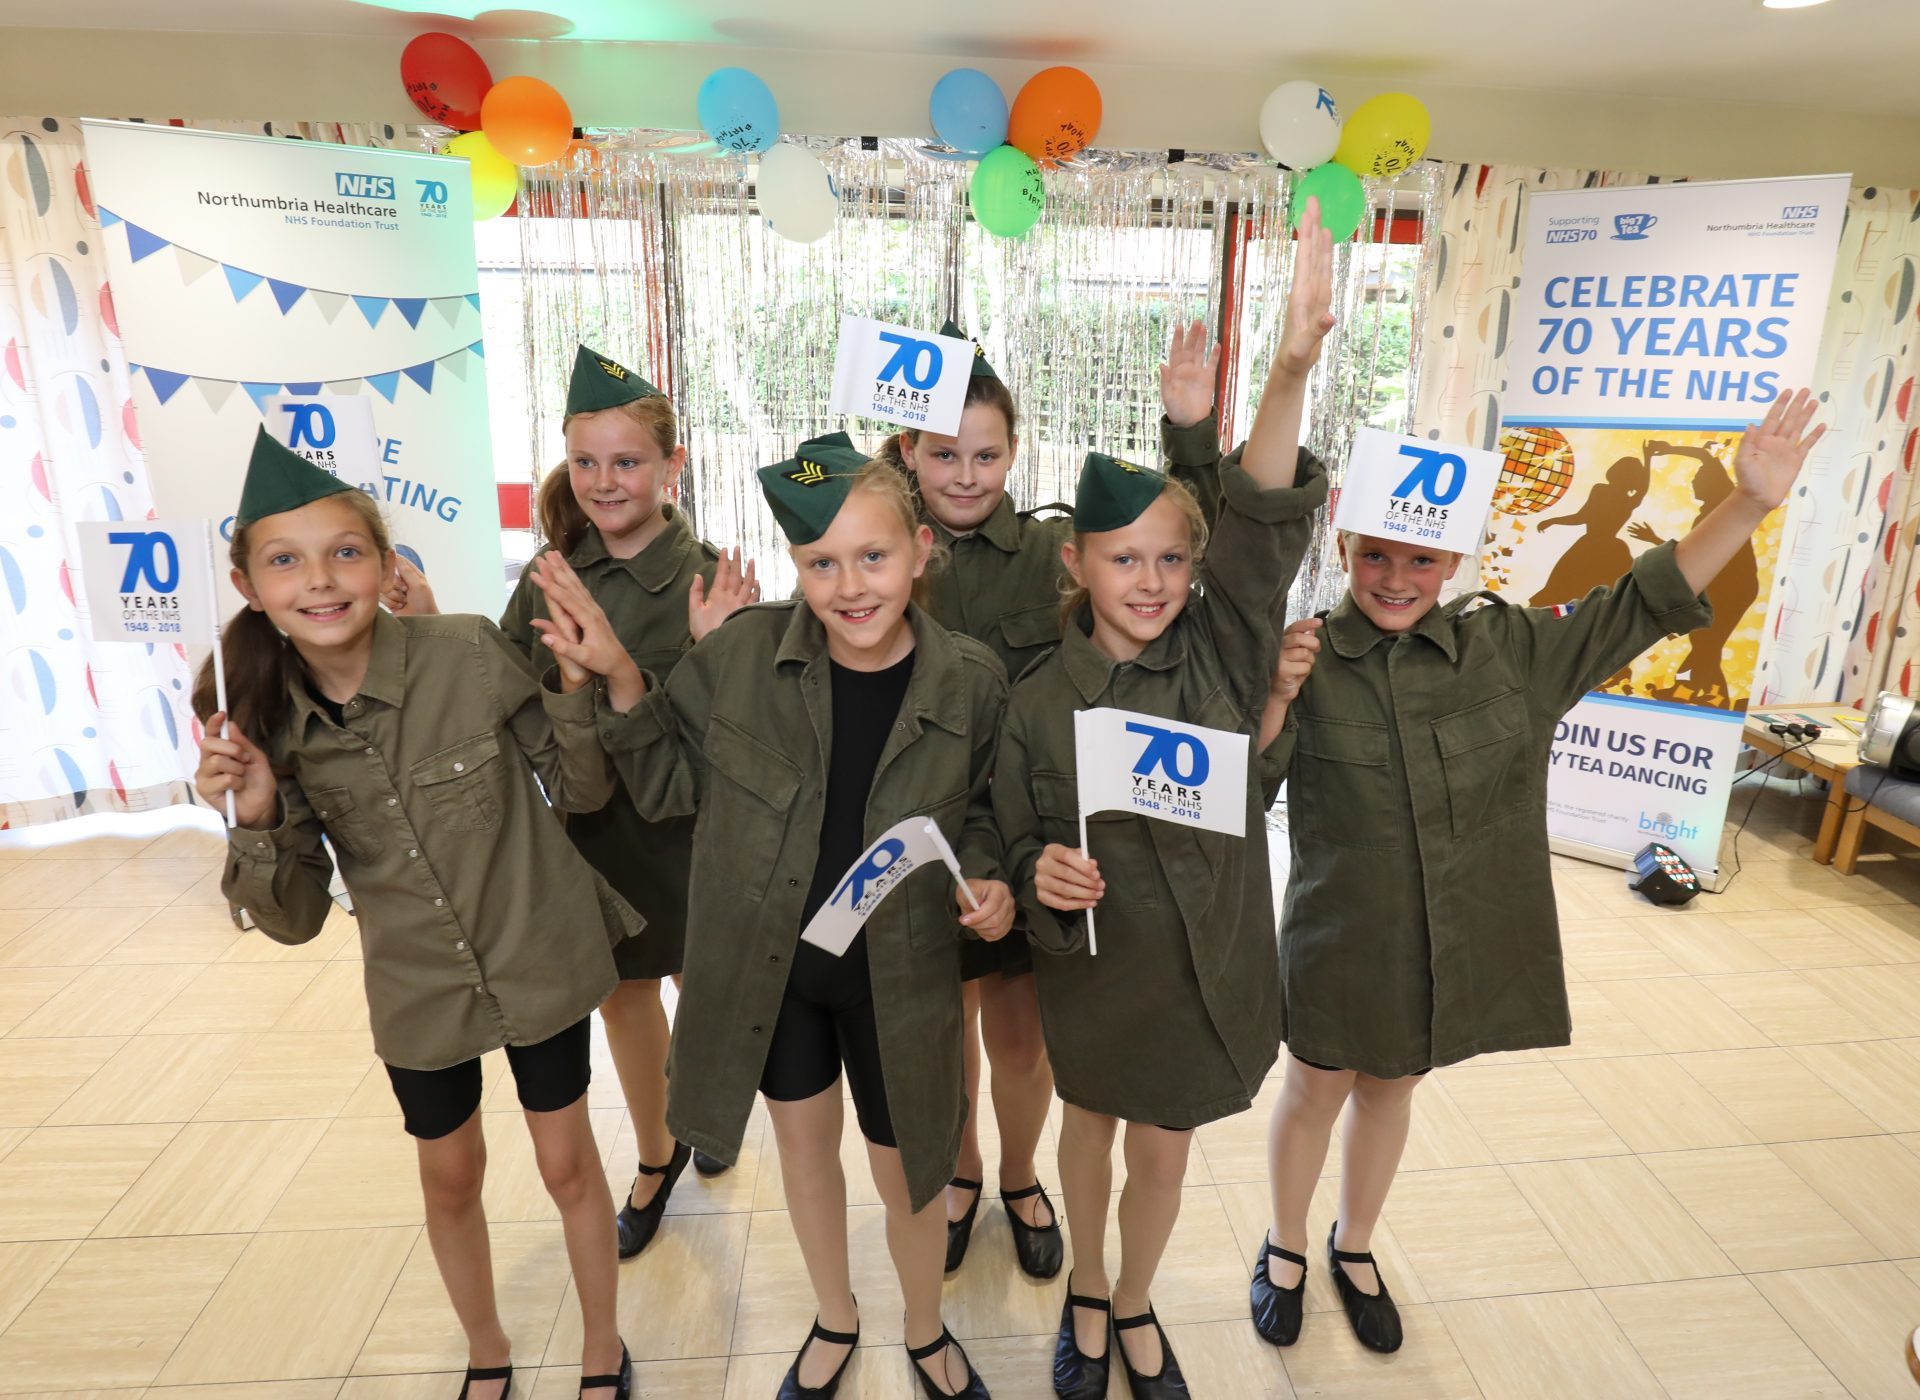 The Lindsey Dance School perform at the tea dance at Blyth Community Hospital to celebrate the 70th birthday of the NHS, July 2018